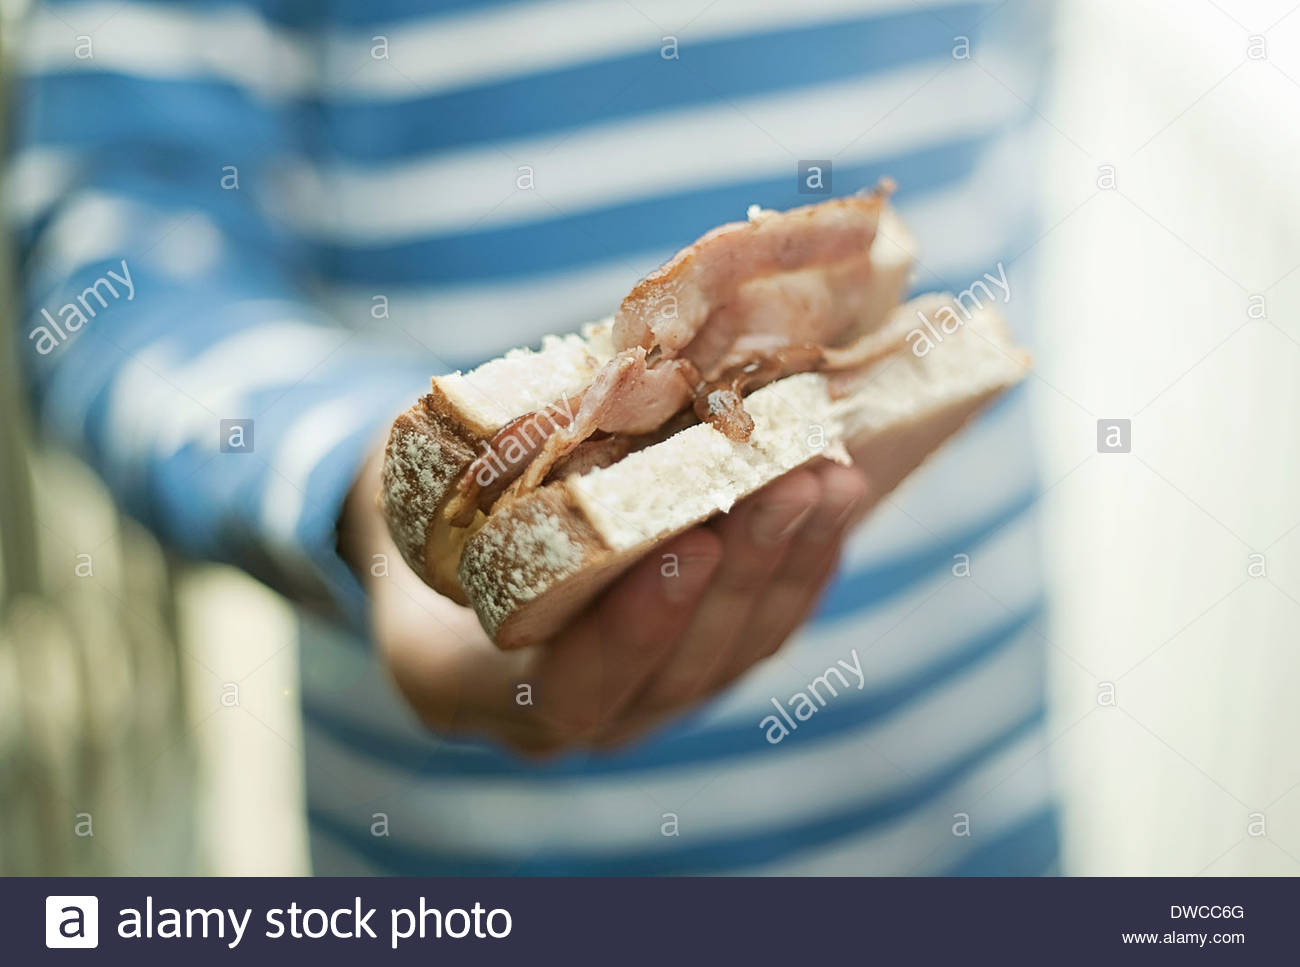 Boy holding bacon sandwich - Stock Image